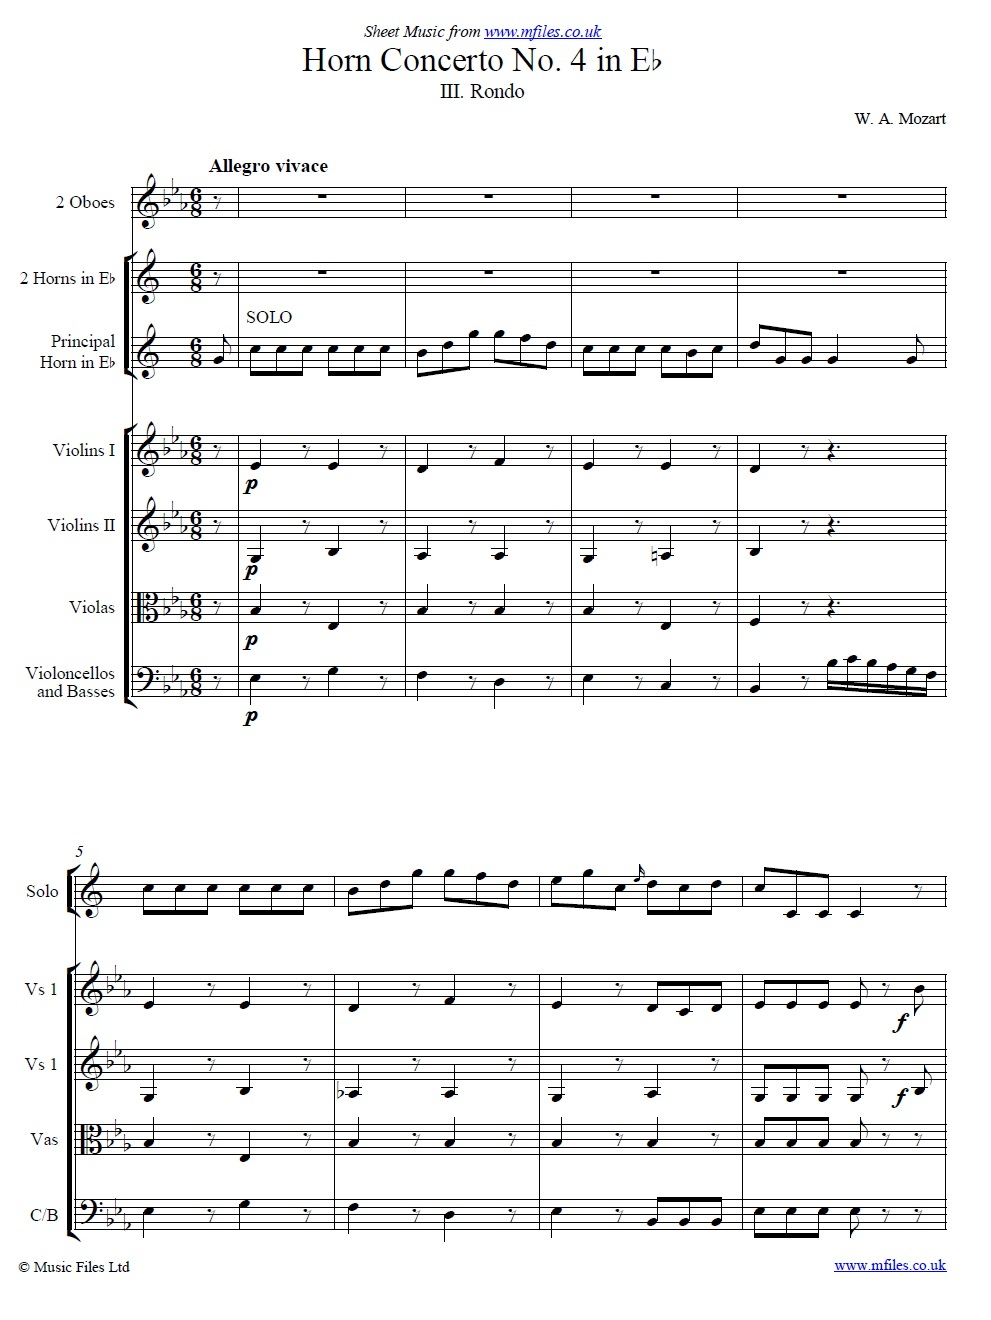 Mozart's 4th Horn Concerto No.4 (3rd Movement: Rondo) score - sheet music 1st page